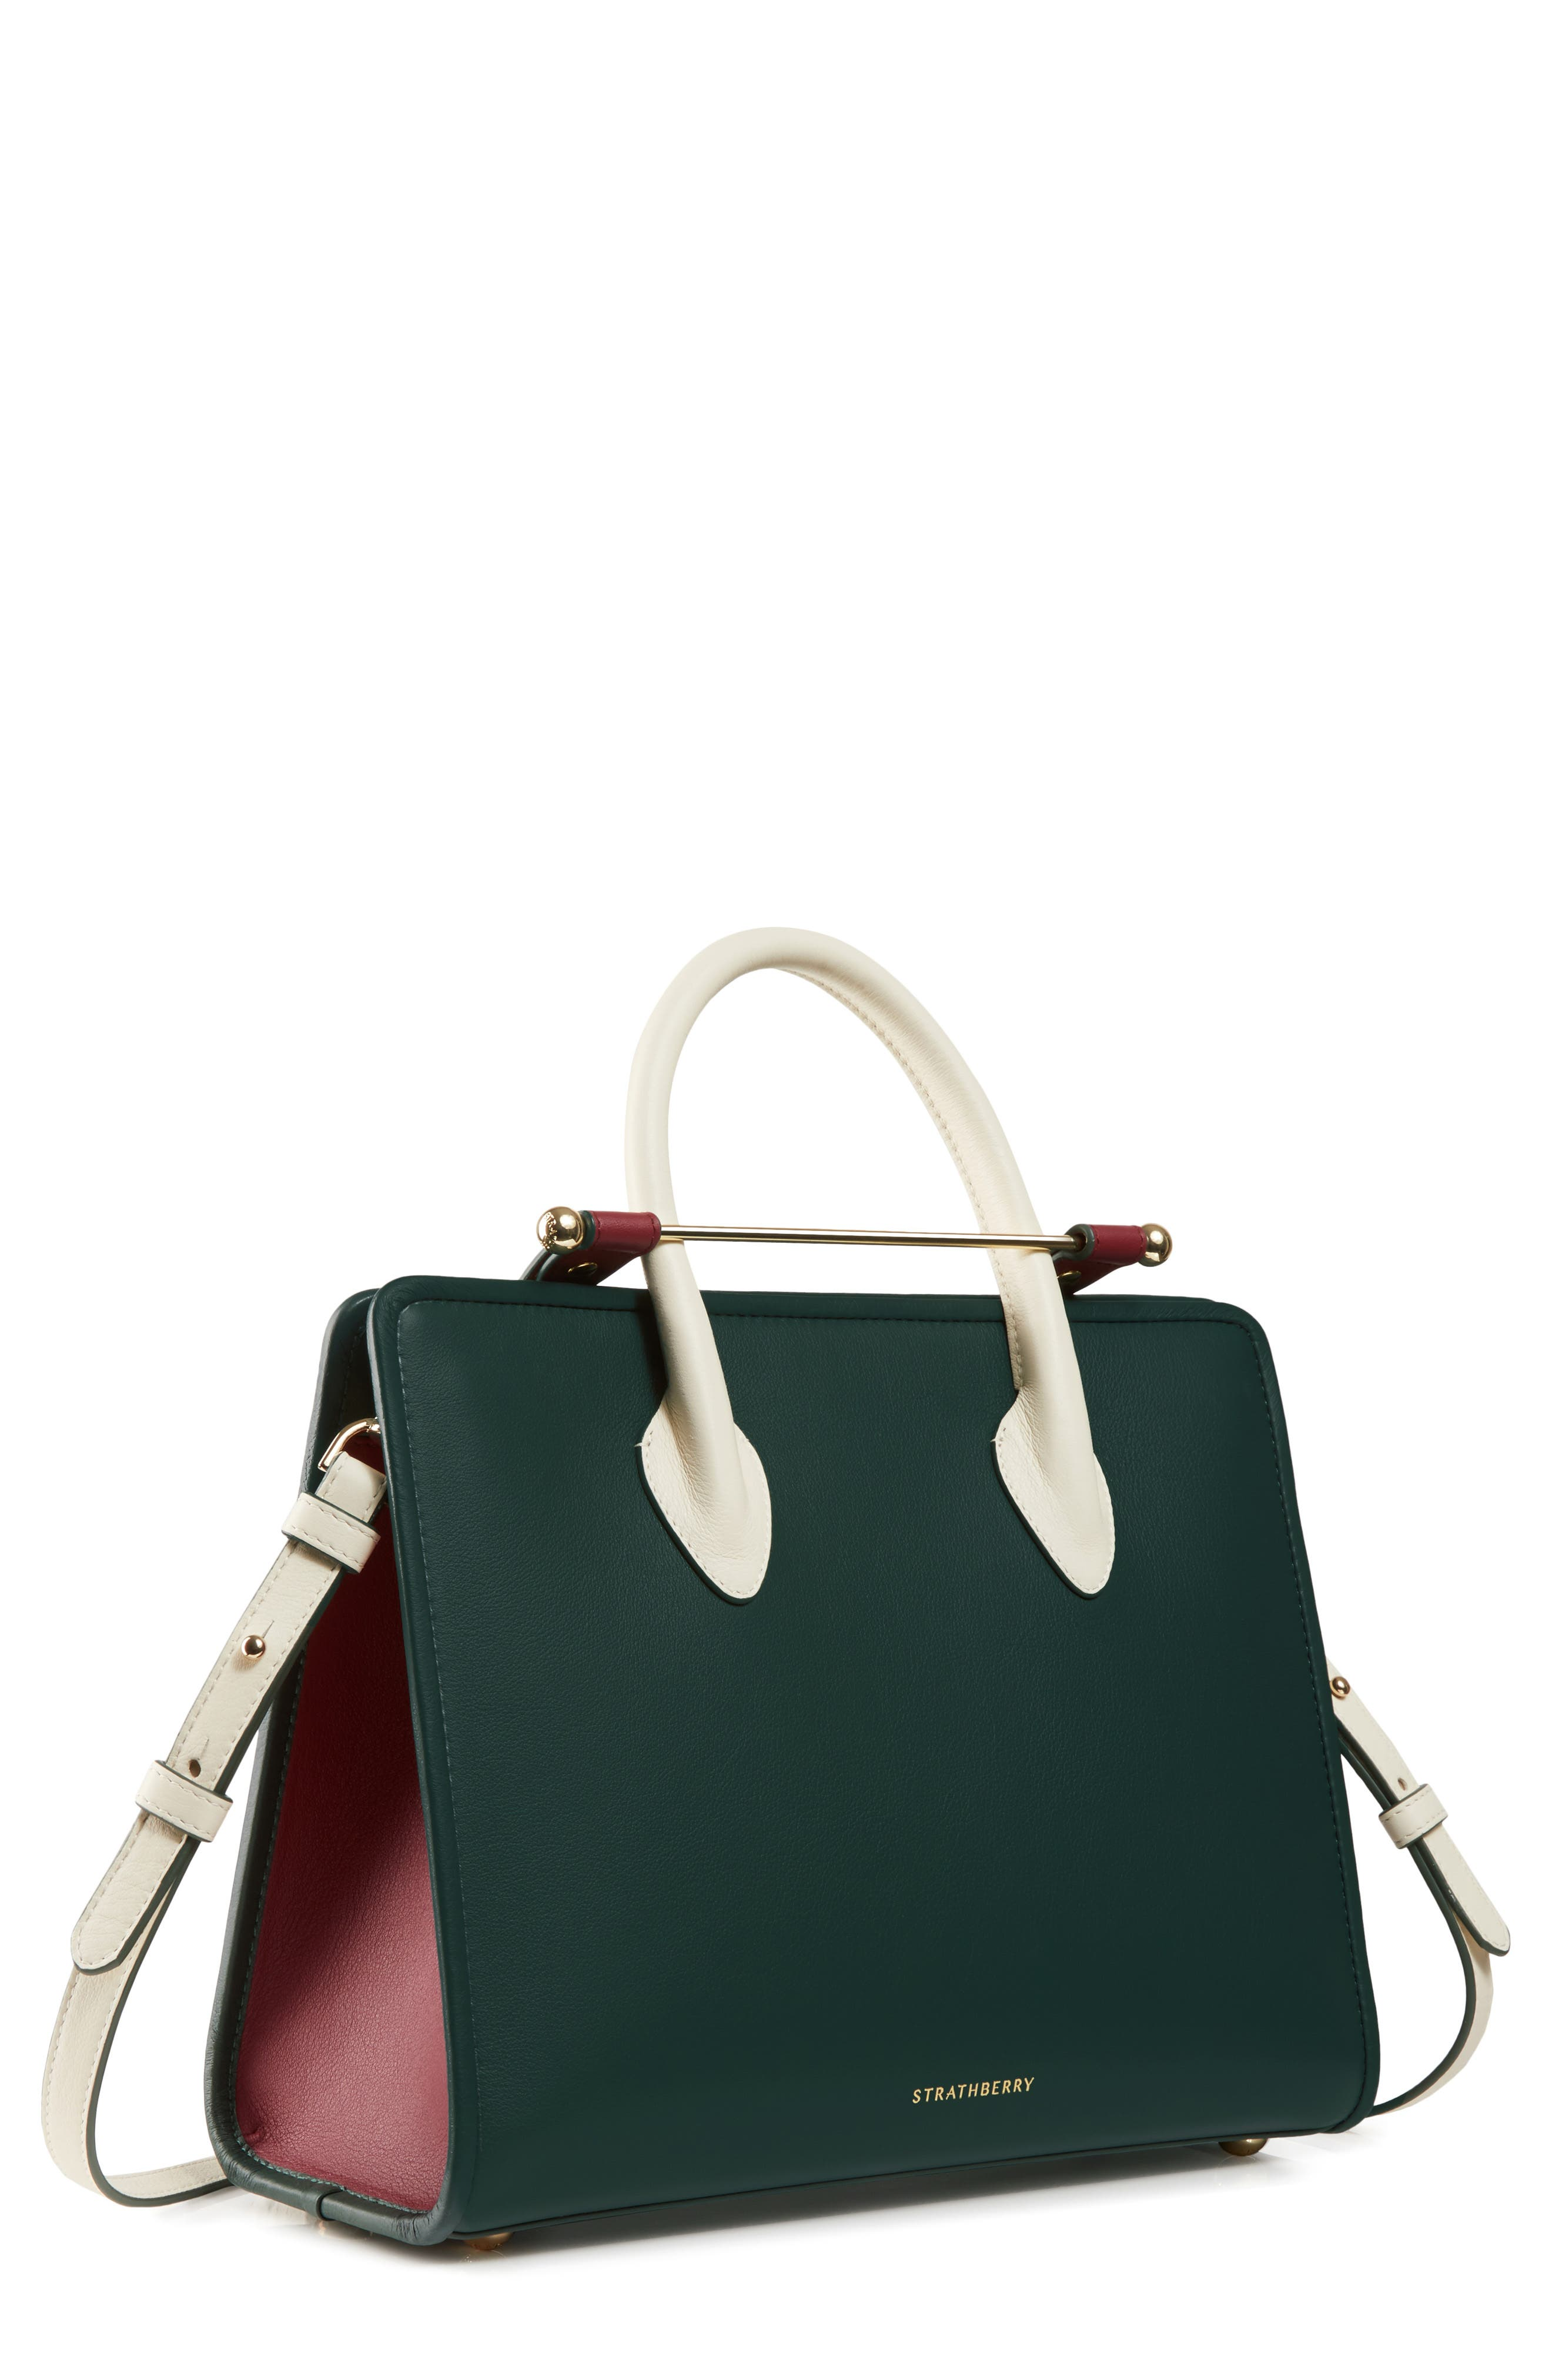 STRATHBERRY,                             Midi Leather Tote,                             Main thumbnail 1, color,                             BOTTLE GREEN/ EMBER/ VANILLA